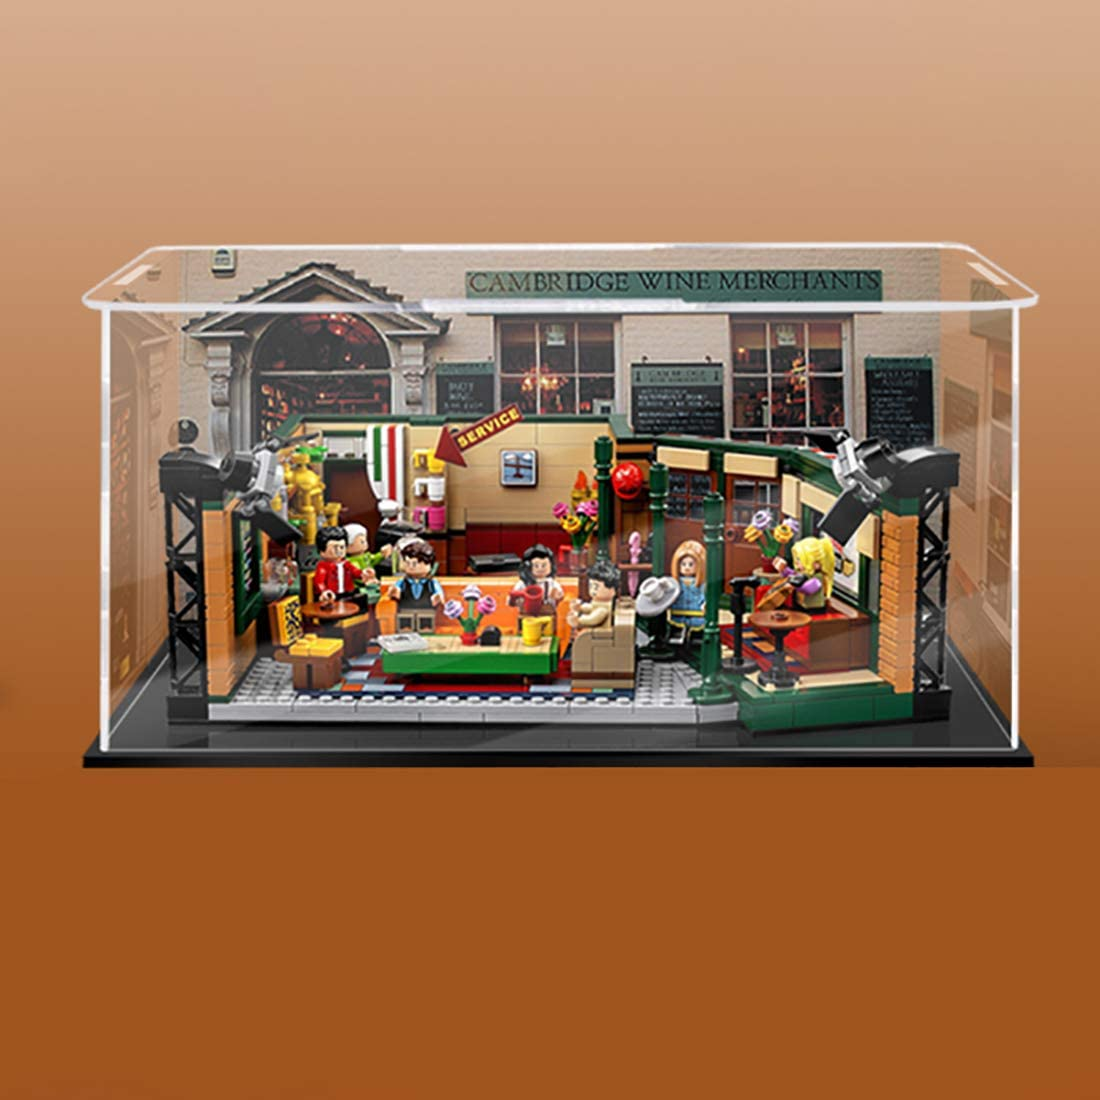 Amazon.com: Lingxuinfo Display Case for Lego Friends Cafe 21319 , Acrylic  Clear Display Box Showcase (Lego Set not Included) - Black Bottom Inkjet  Type: Toys & Games